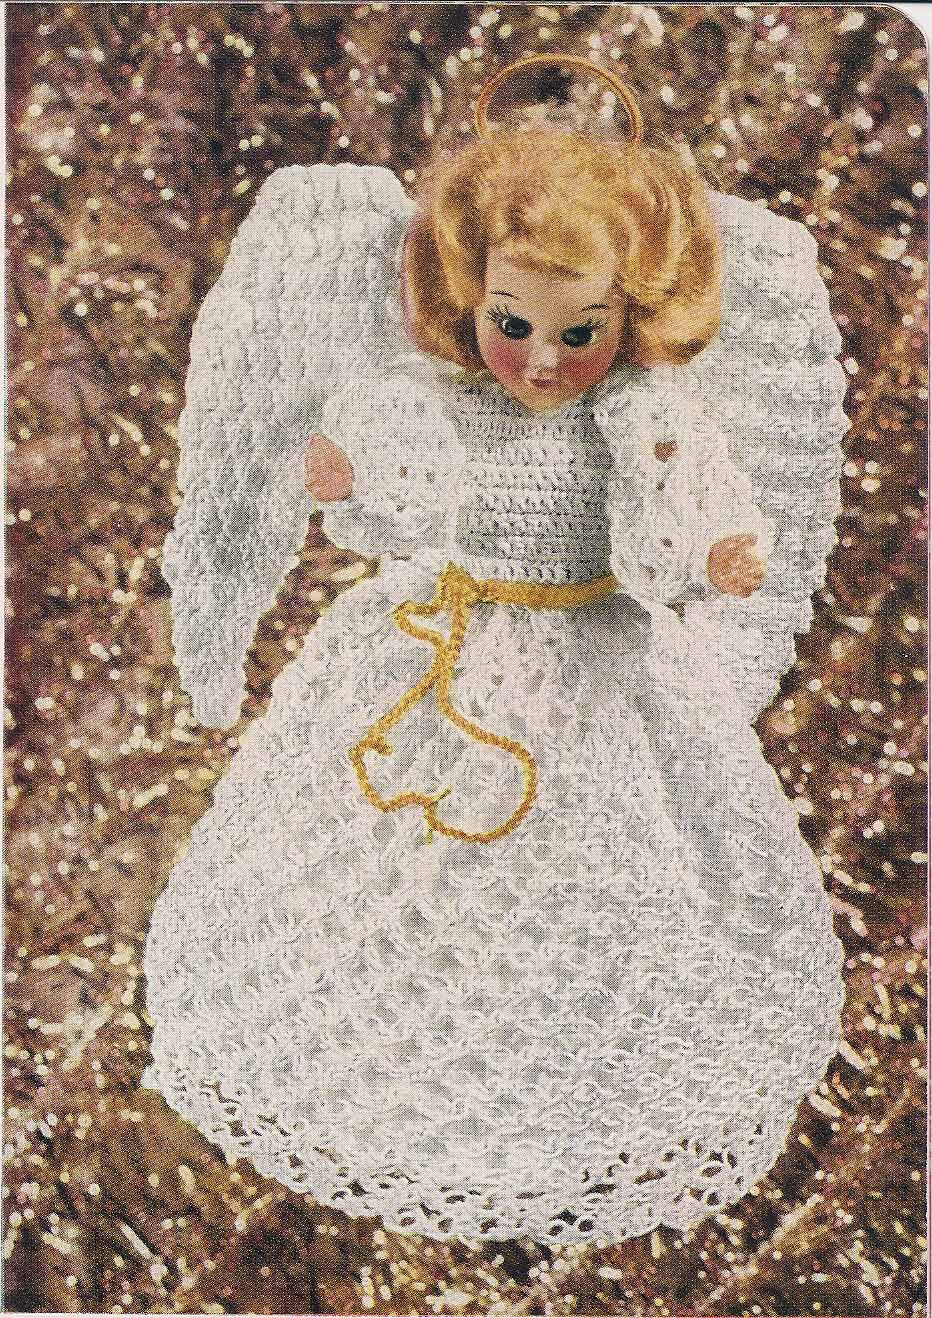 Shell angels - Crochet_titis